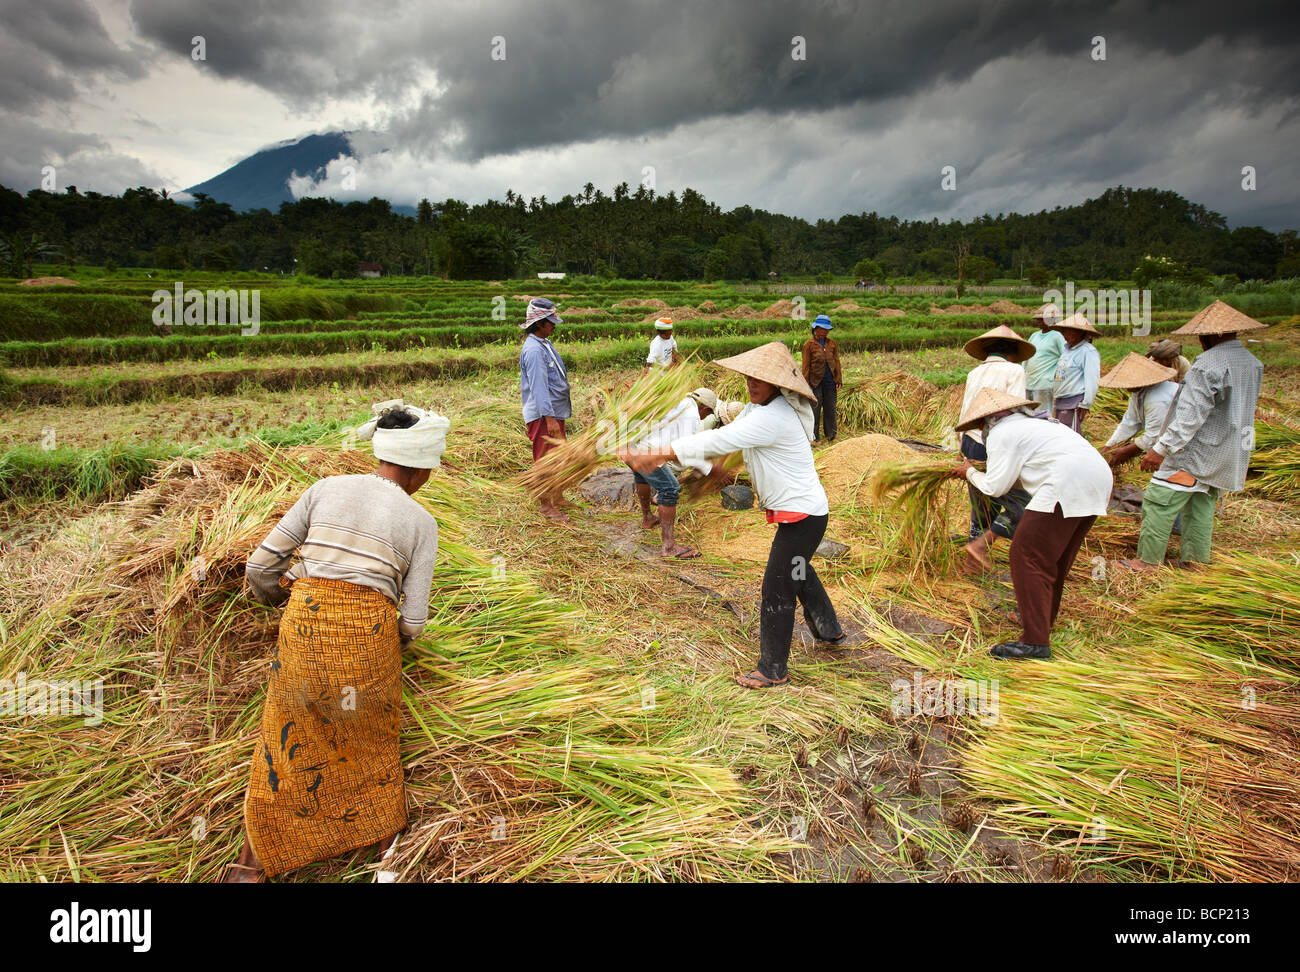 workers threshing rice in the fields nr Sibetan, Bali, Indonesia - Stock Image